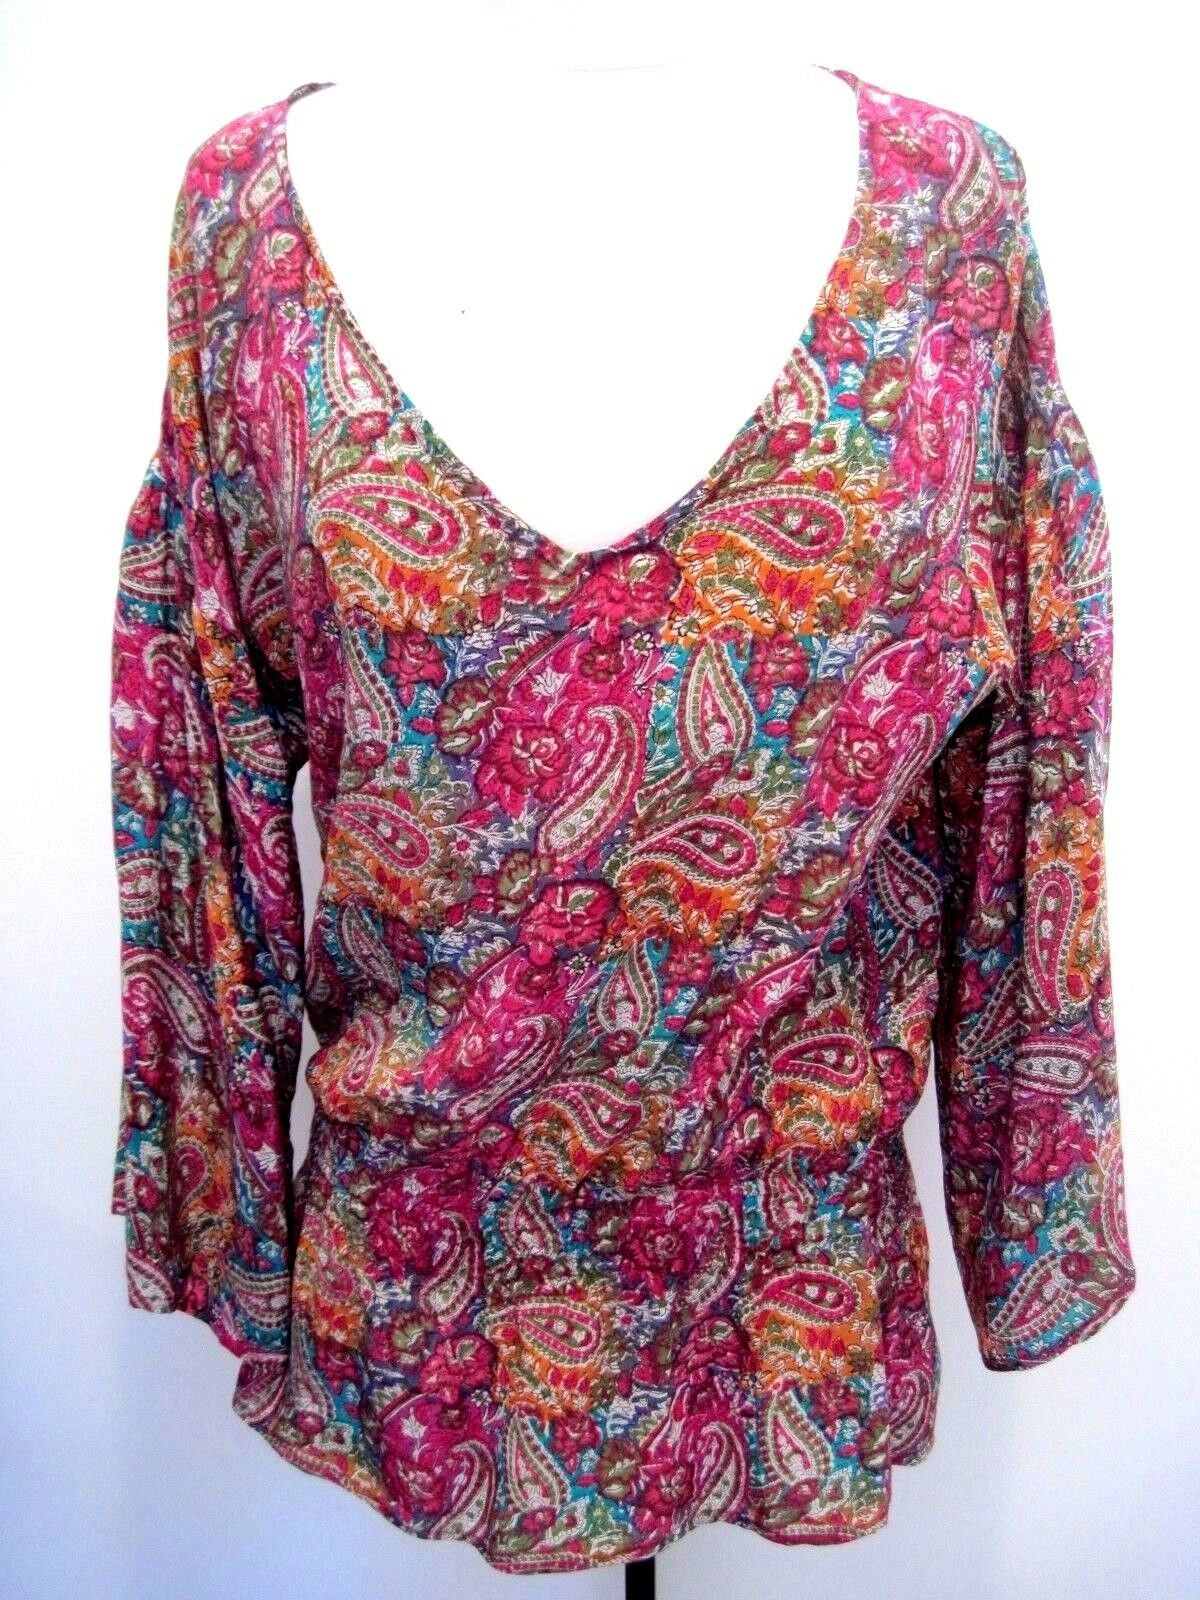 Tolani 100% Silk Paisley MulticolGoldt Tunic, Blouse Dress Größe M